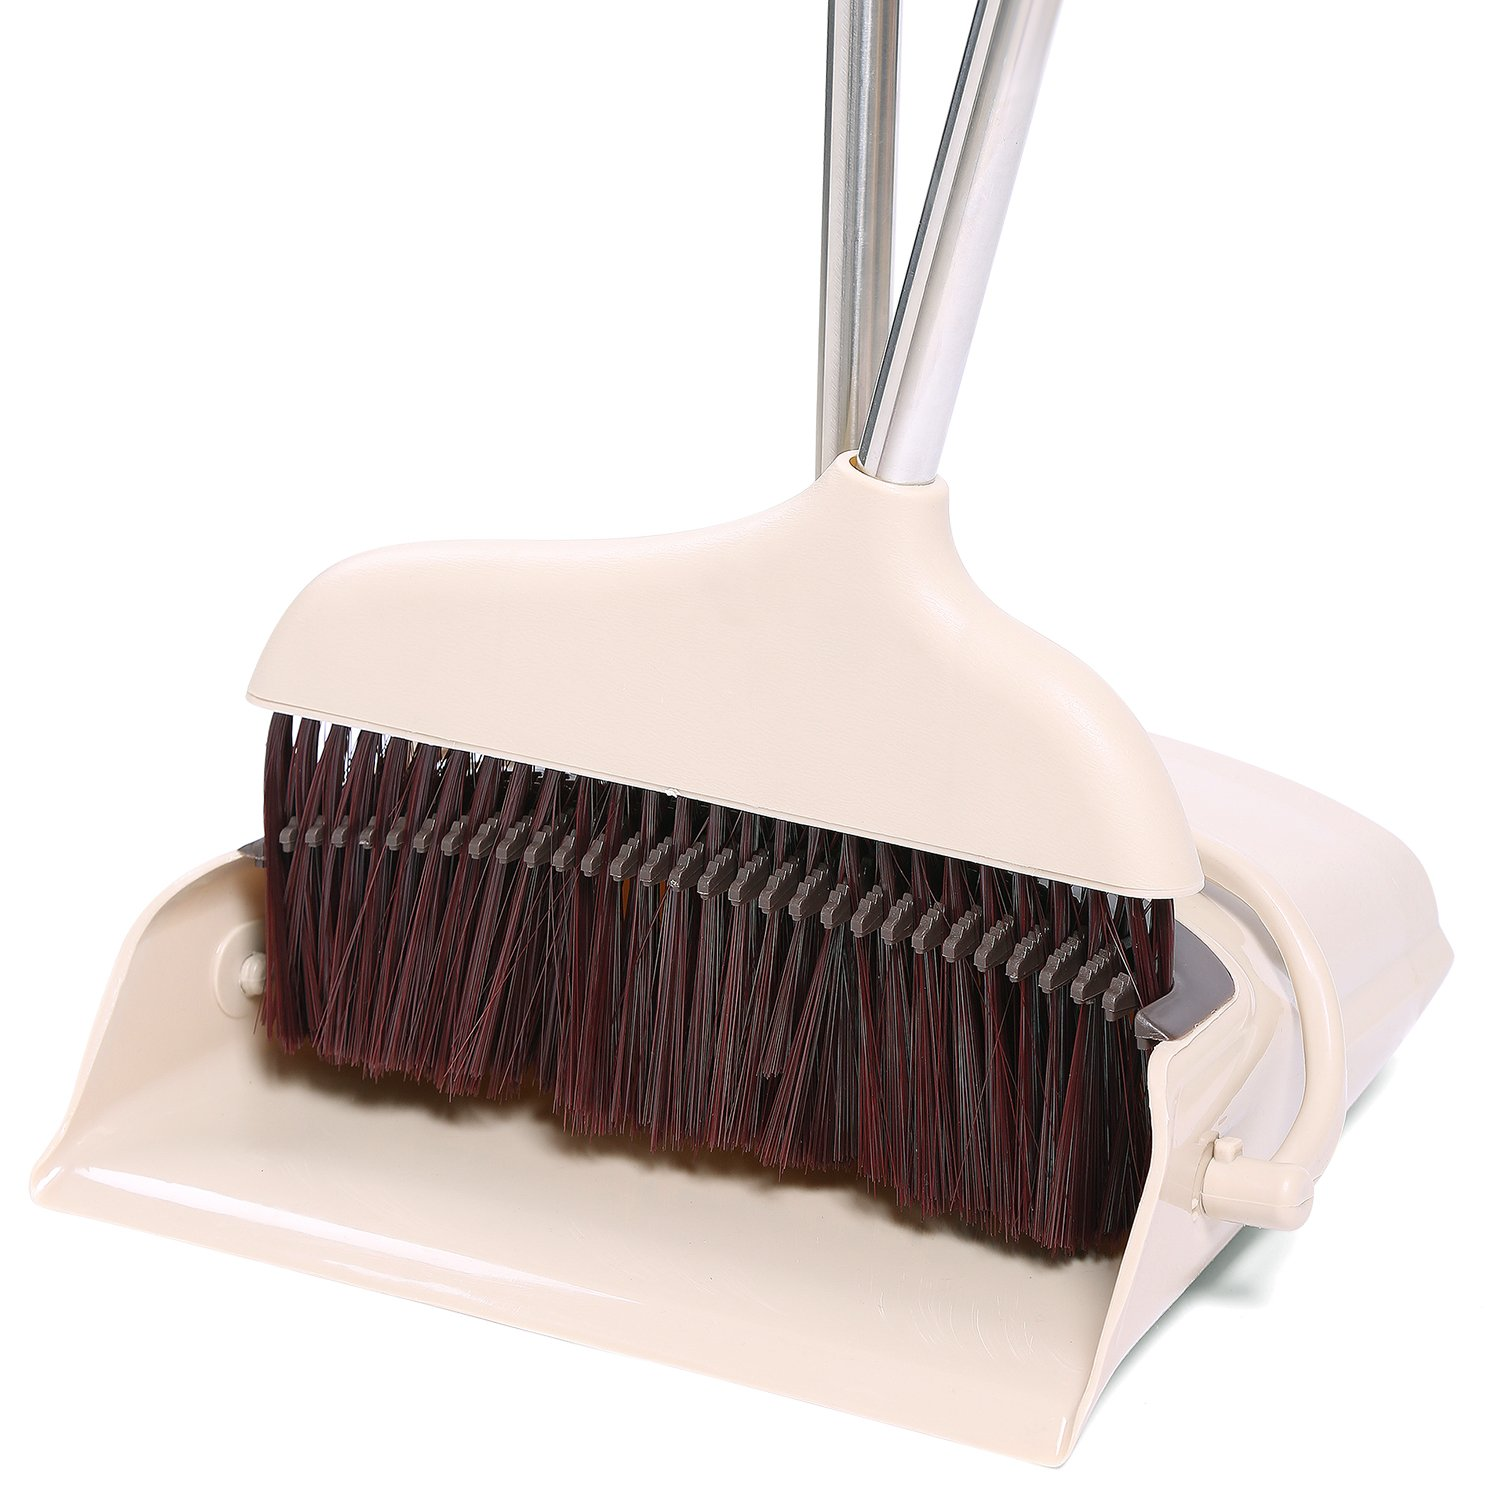 Toclean Dustpan Broom Set with Comb, Pivoting Upright Lobby Sweep Combo, 3 Foot Metal Handle with Grips, Home Office Shop Use